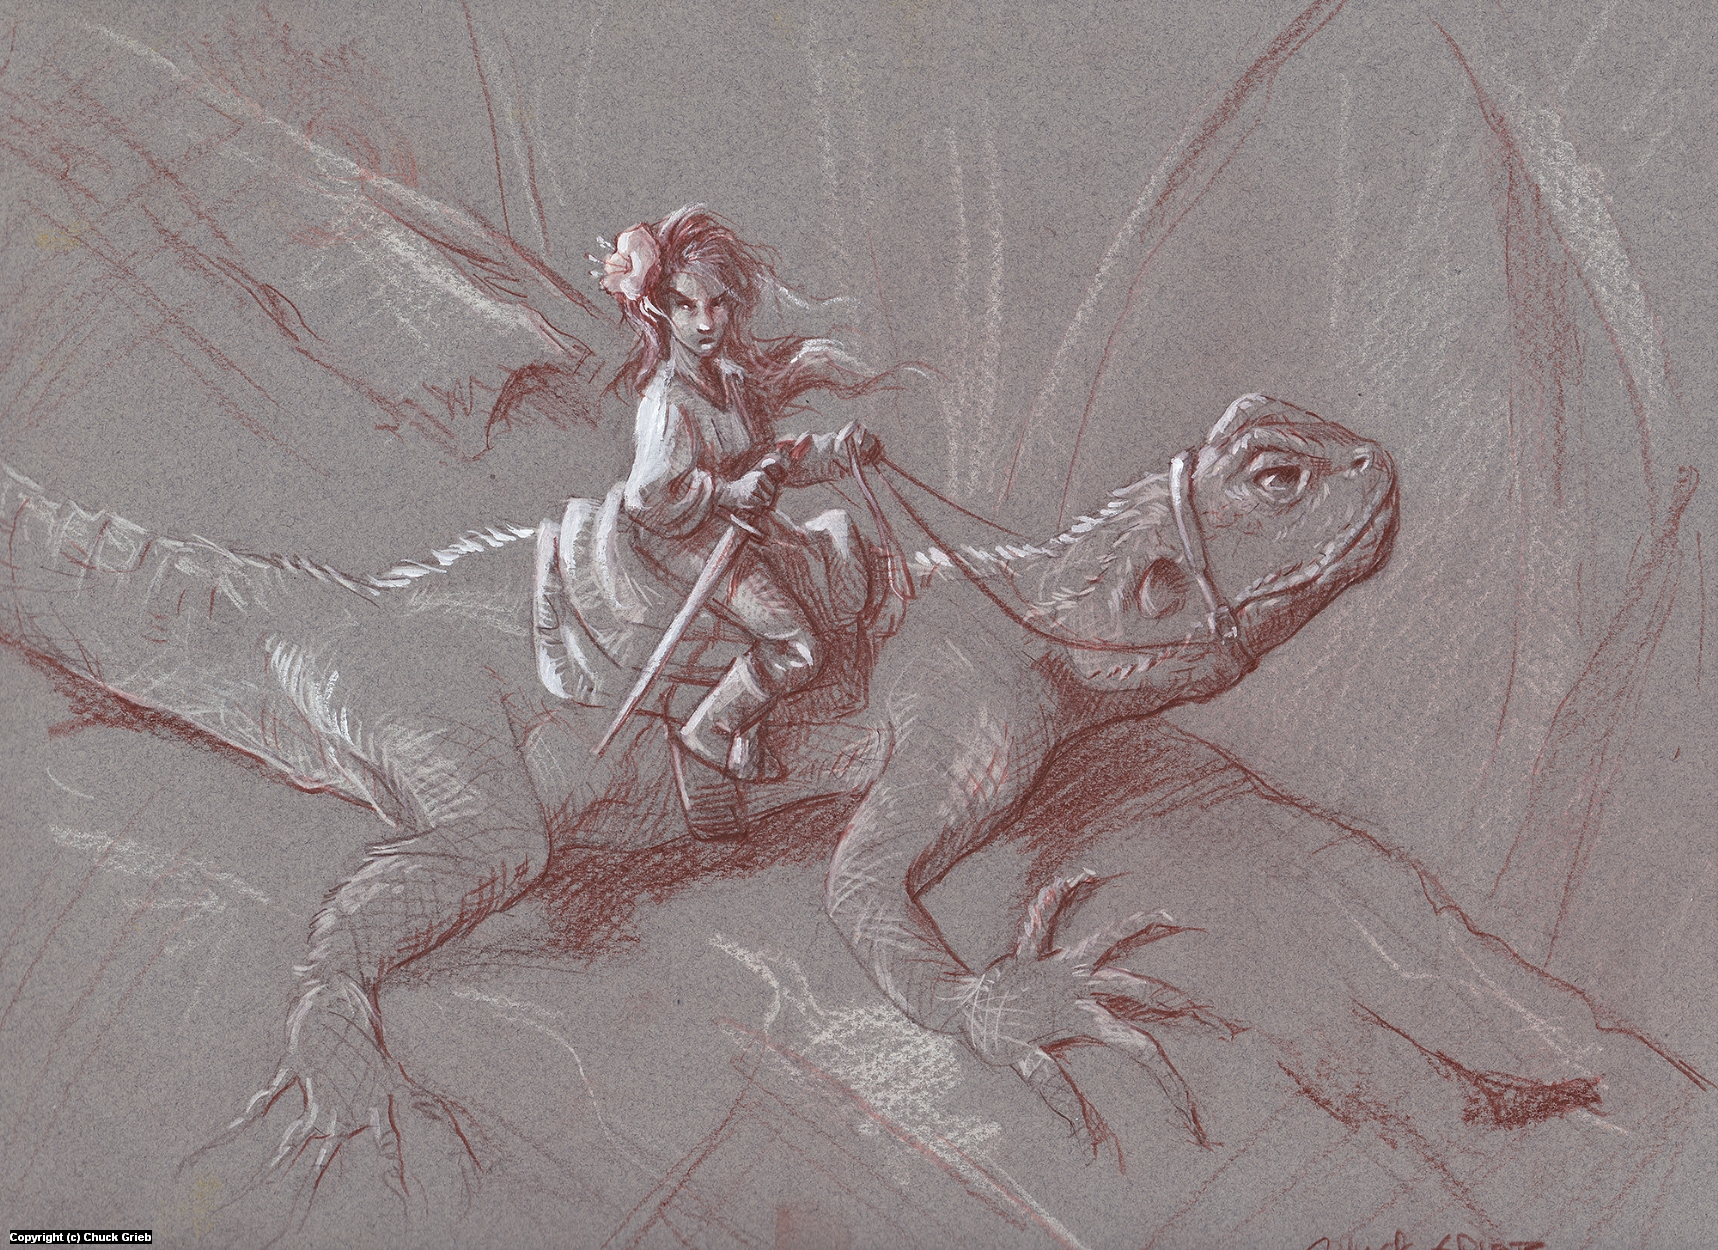 Lizard Rider Artwork by Chuck Grieb